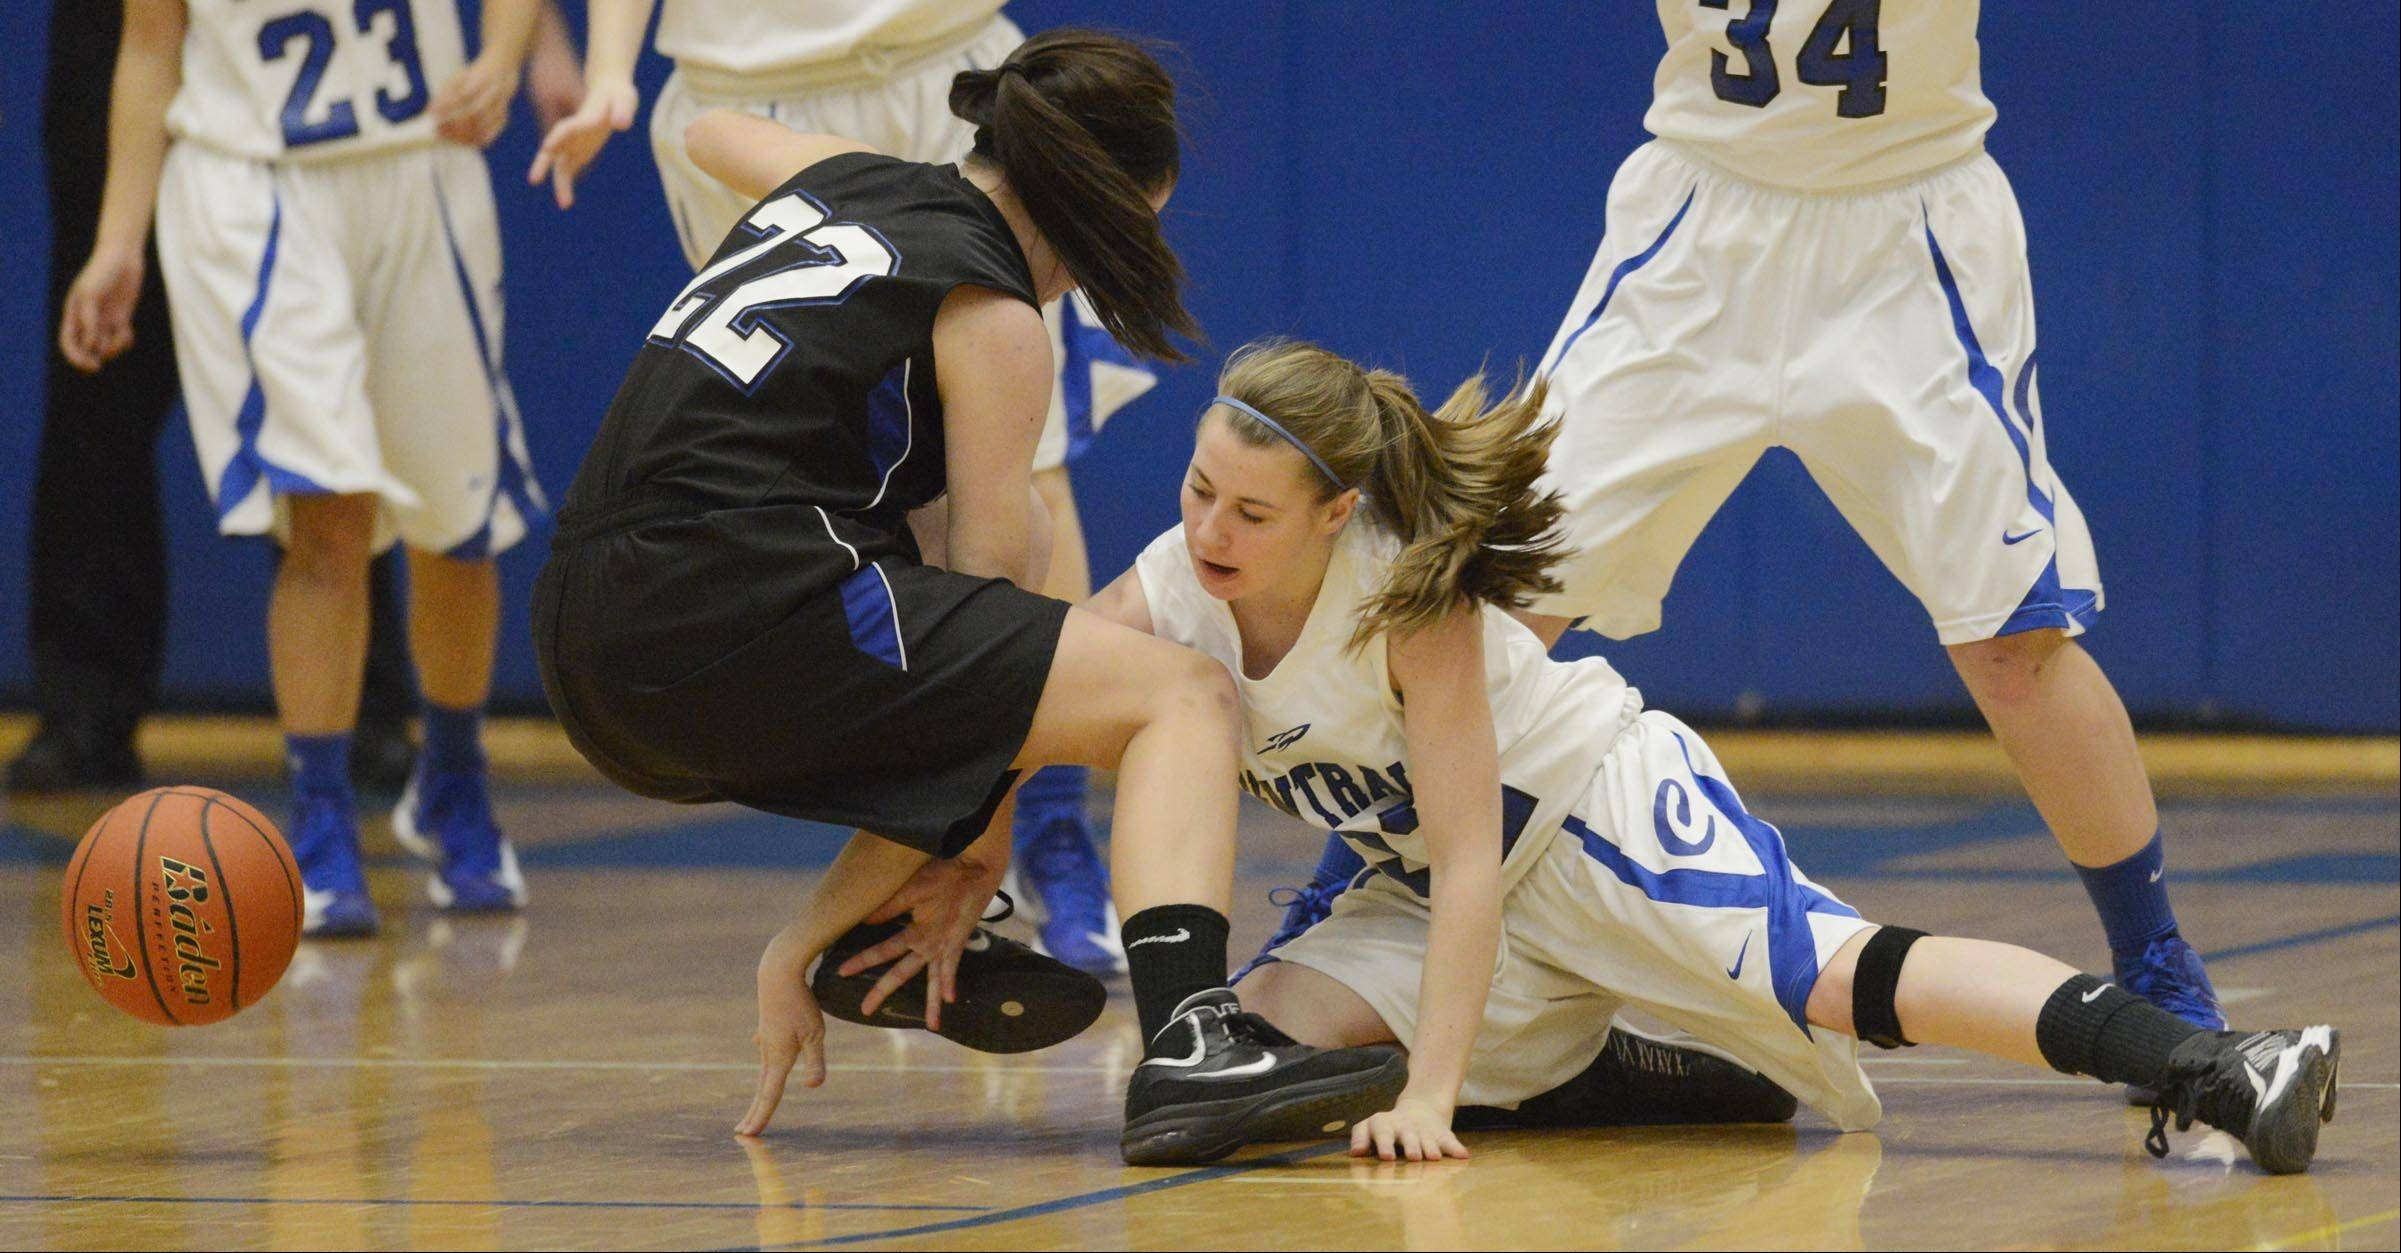 Burlington Central's Aly DeTamble punches the ball away from St. Charles North's Kayla Balousek.